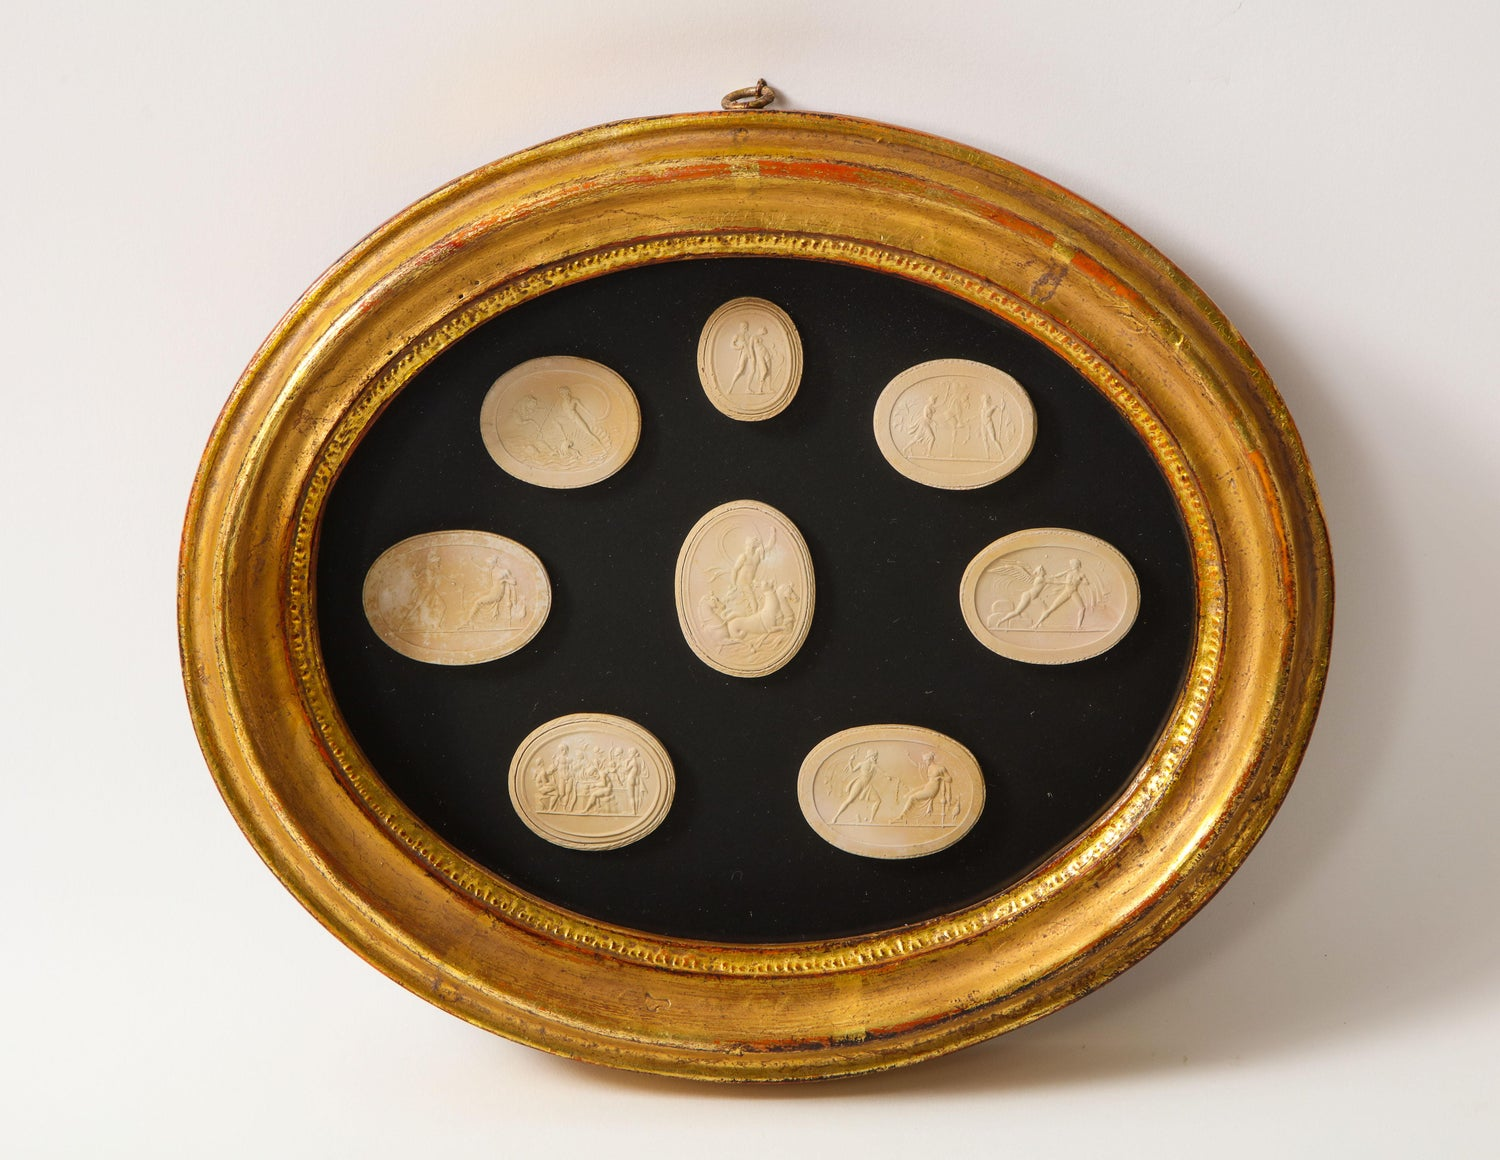 Framed Reproduction Grande Tour Intaglios mounted on  Italian endpaper in vintage round Italian Creamy white gilt frame